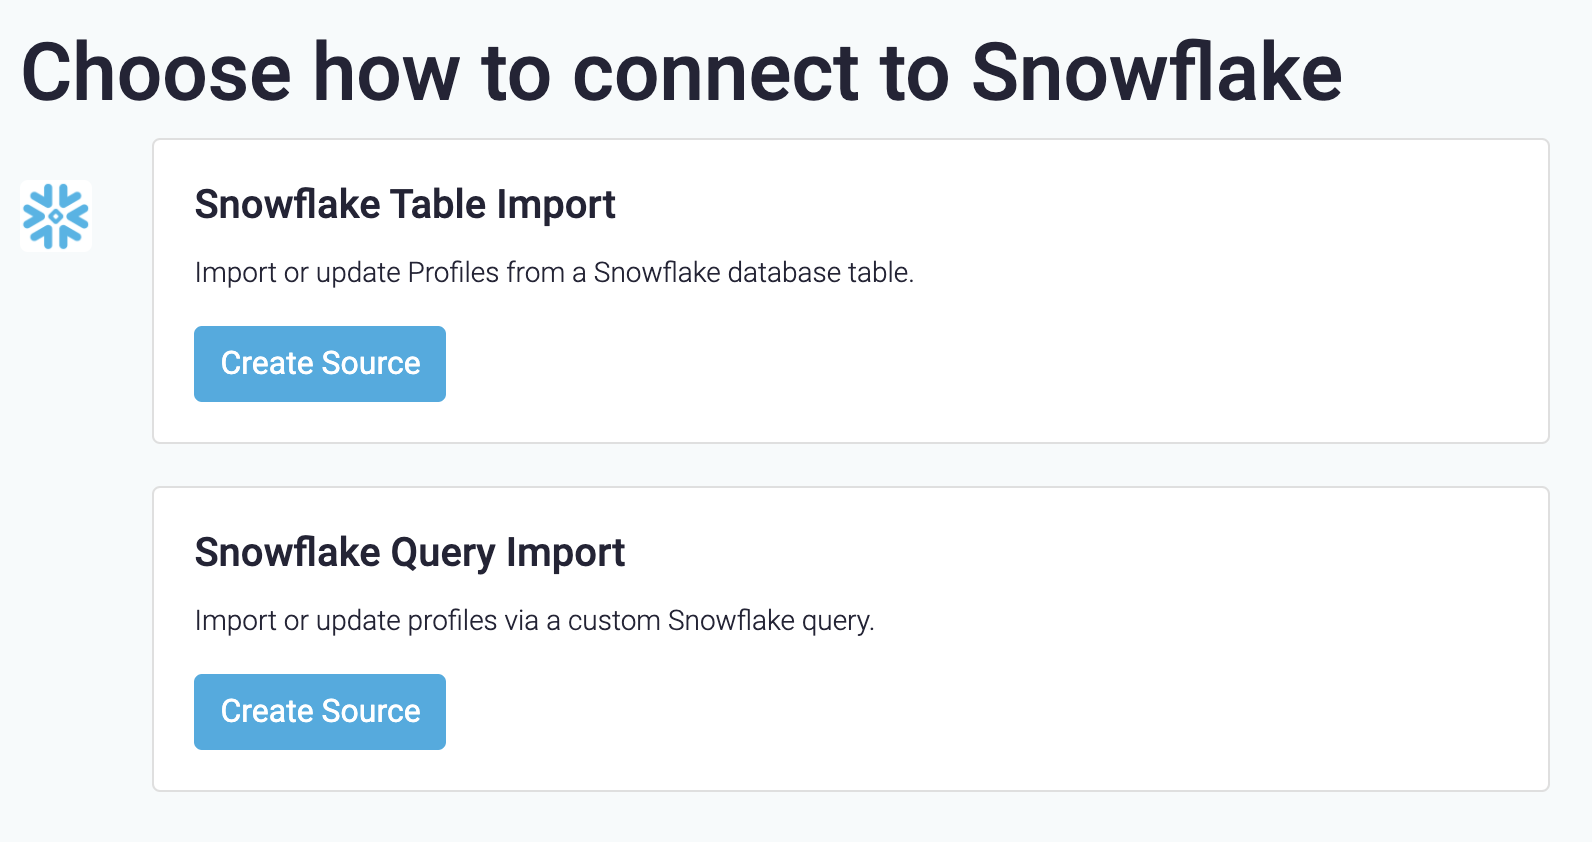 Types of Snowflake sources